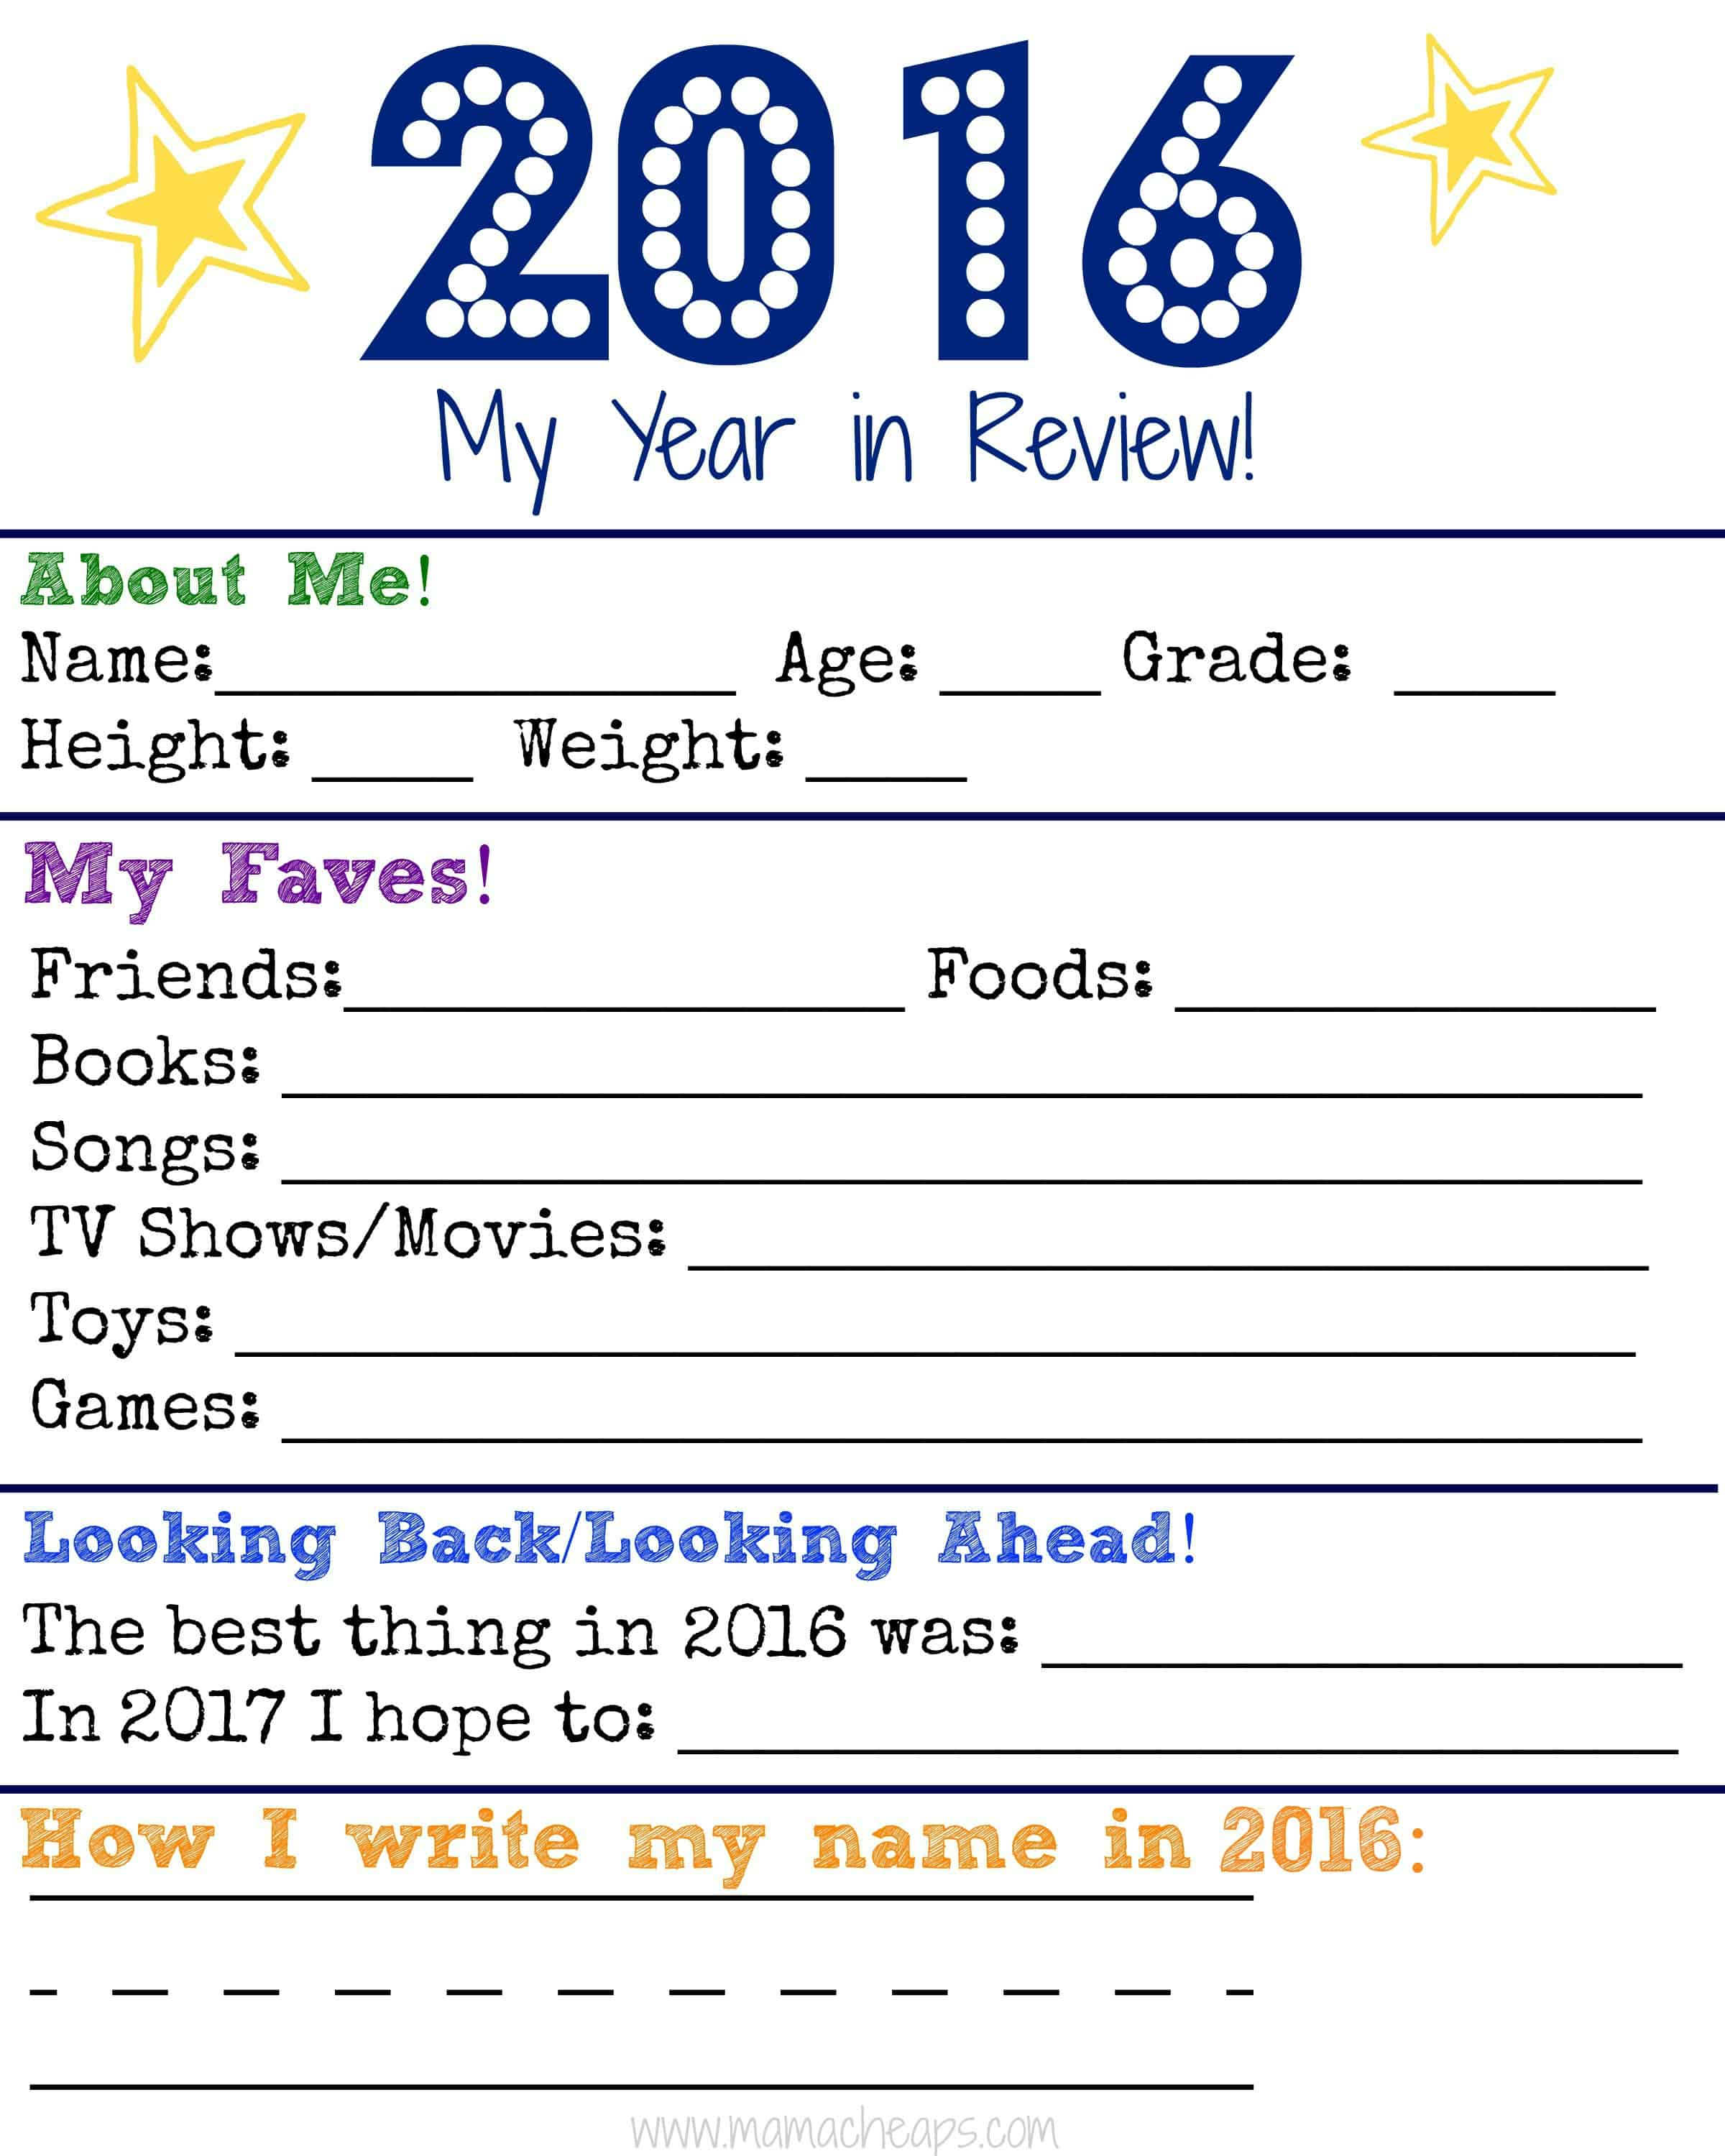 Family Time Capsule Jars For New Year S Free Printable Kid Survey